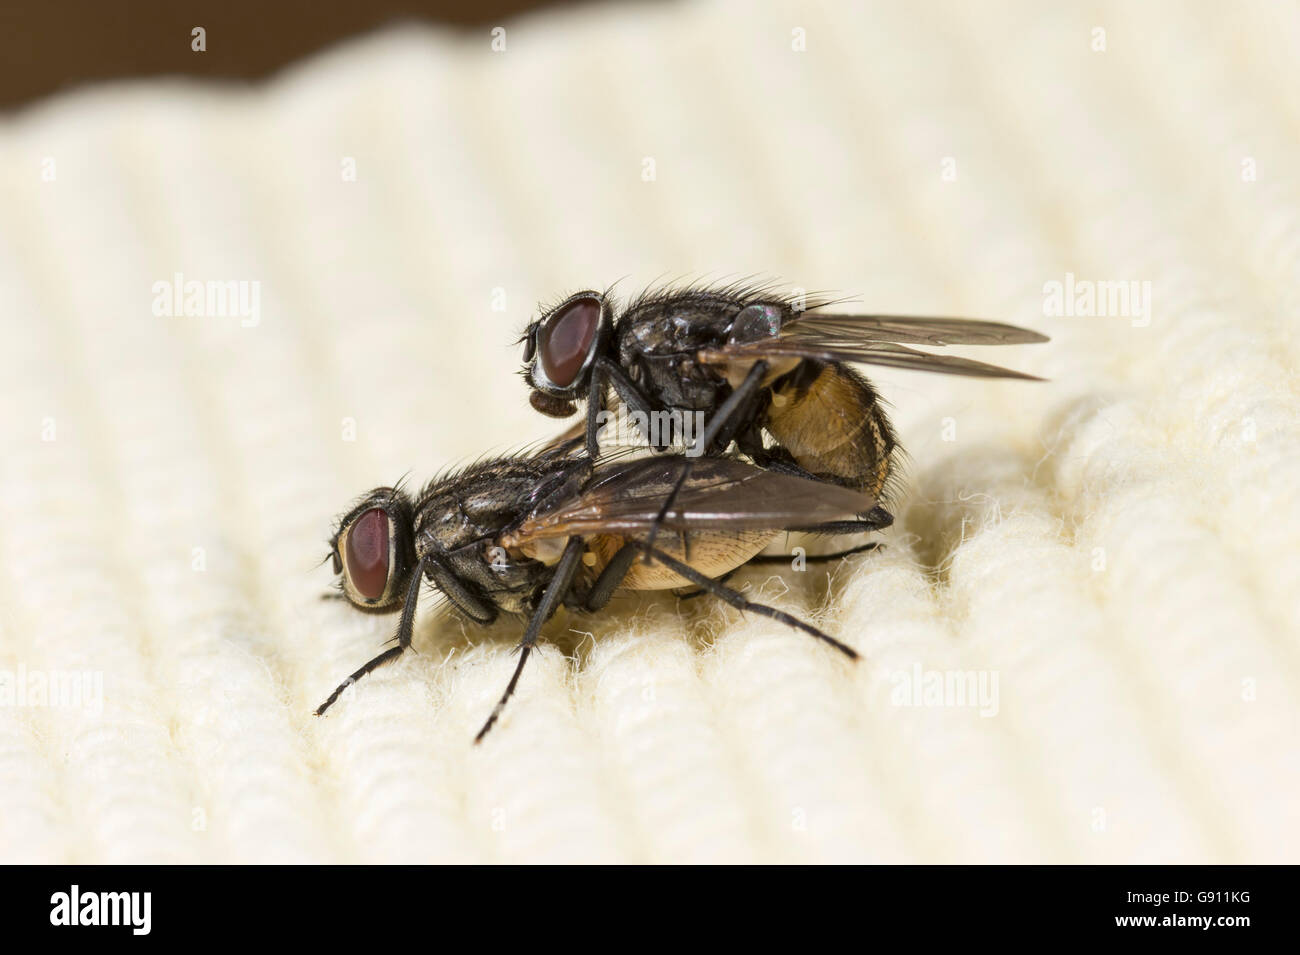 Mating pair of house flies (Musca domestica) - Stock Image